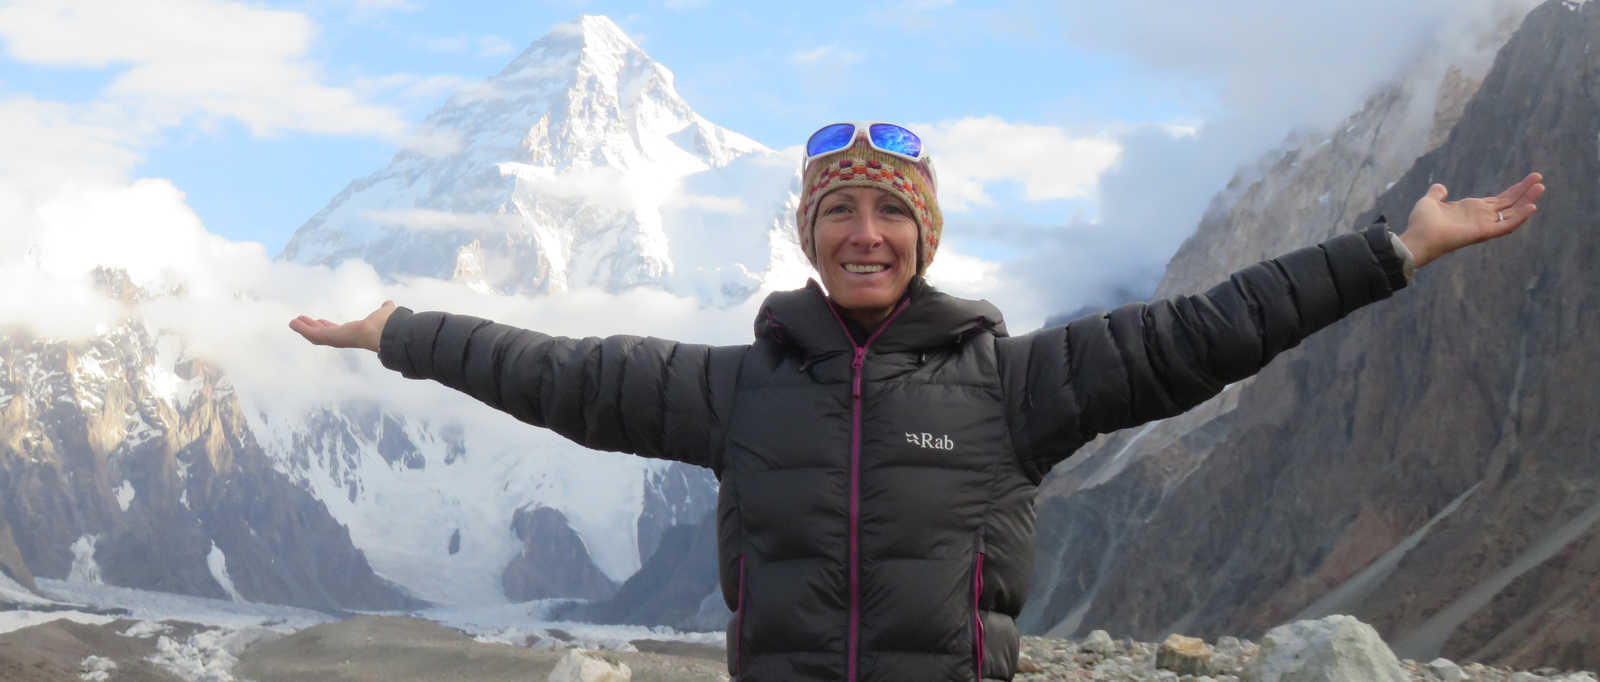 Sara Bull Nominated in the Wanderlust World Guide Awards